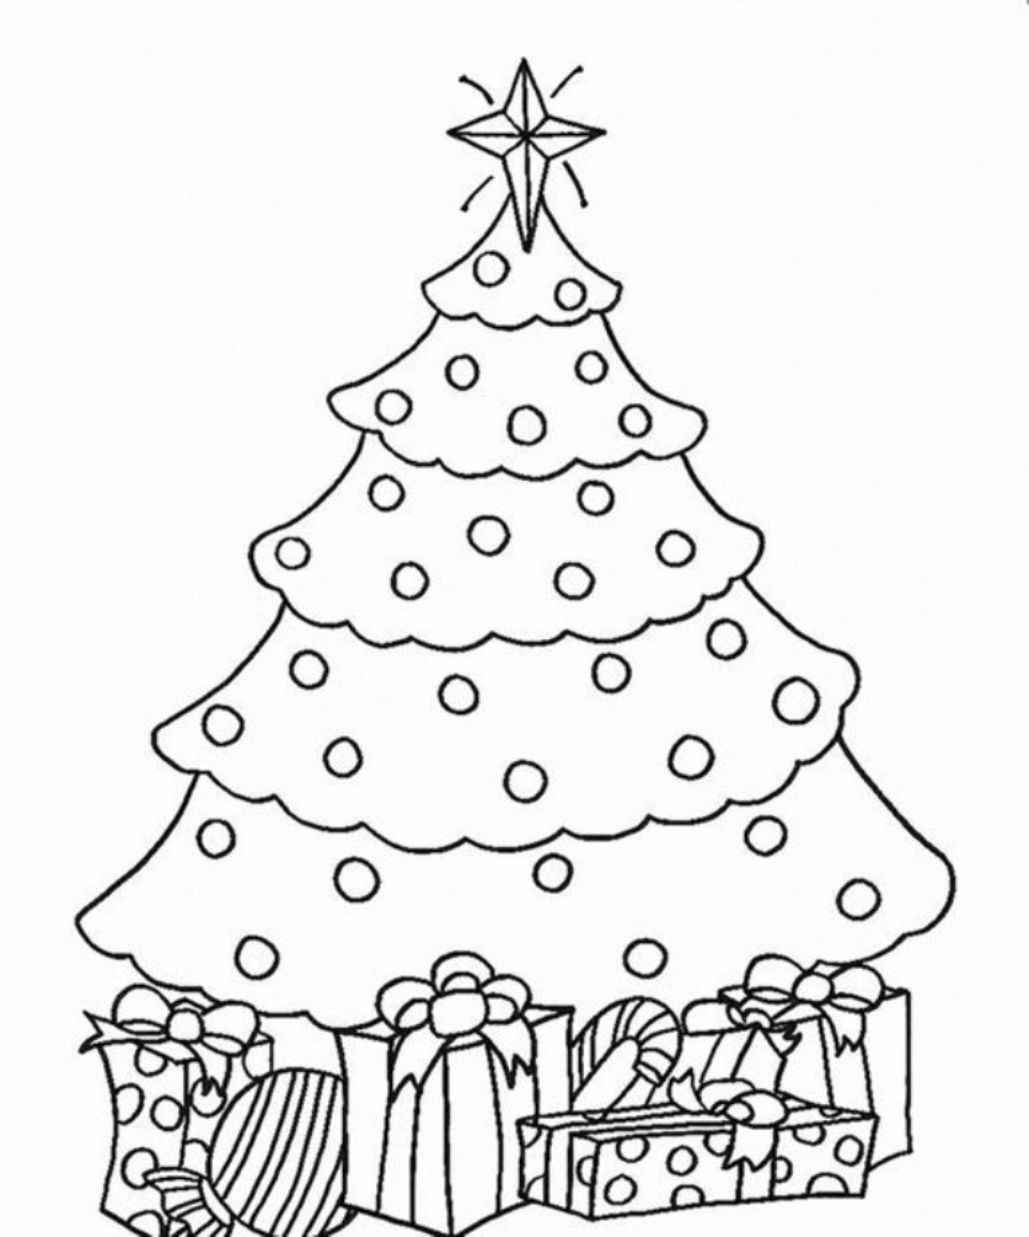 christmas tree drawing for coloring at getdrawings com free for